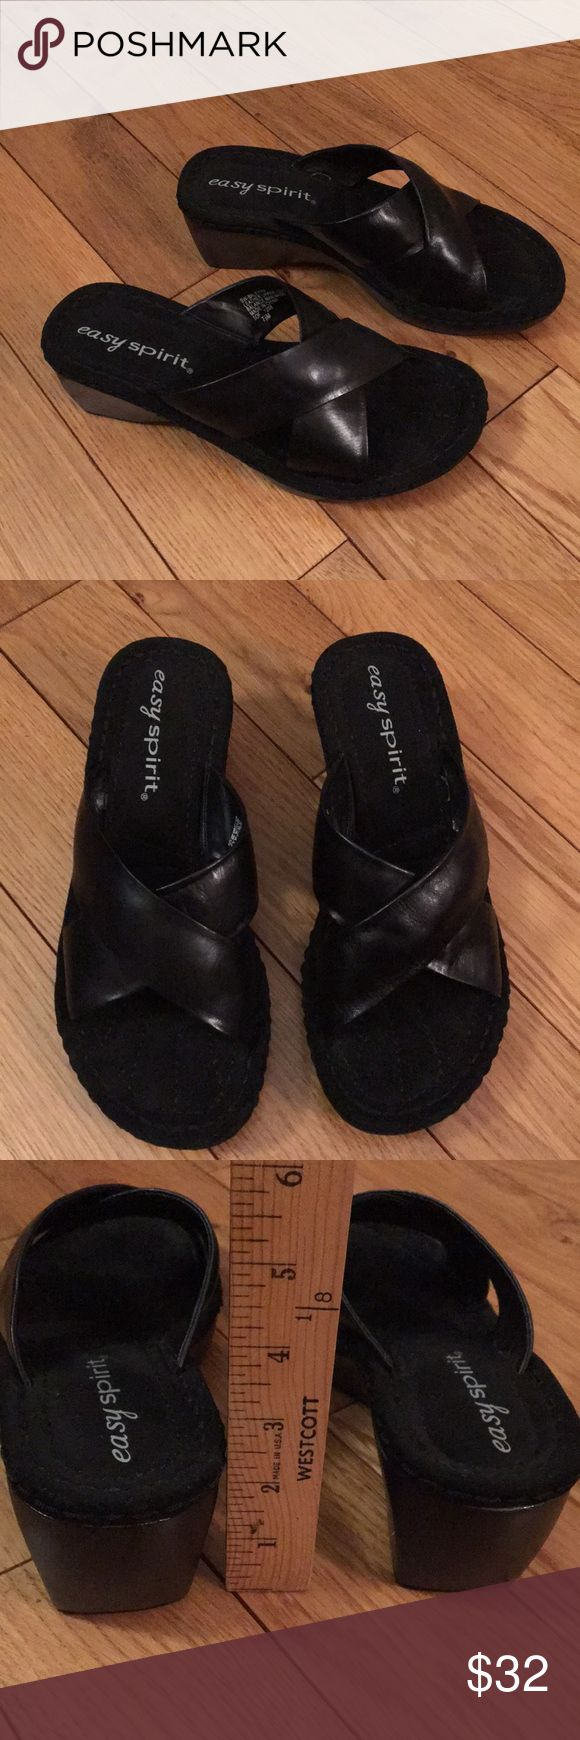 """NWOB! Black Easy Spirit sandals Women's size 7 1/2. Leather upper. 2 1/2"""" heel. 1"""" front platform. Cushioned suede-like insoles. Pretty! Easy Spirit Shoes Sandals"""